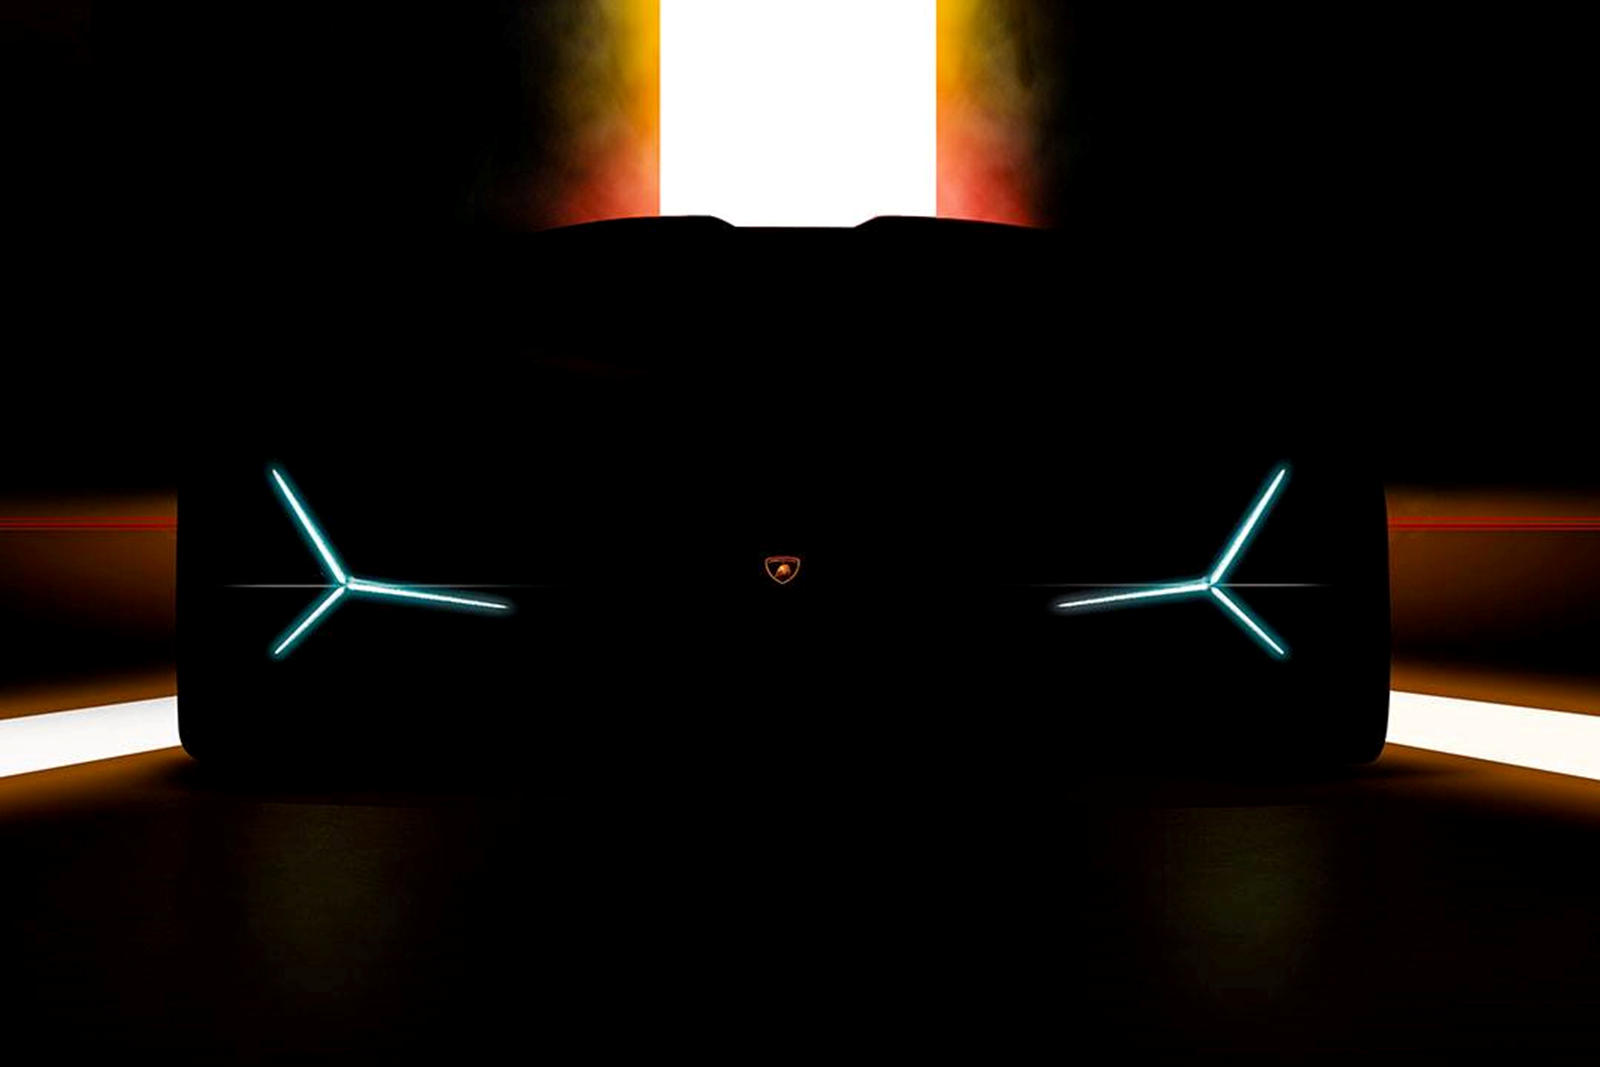 Lamborghini's New Mystery Model Could Change Everything